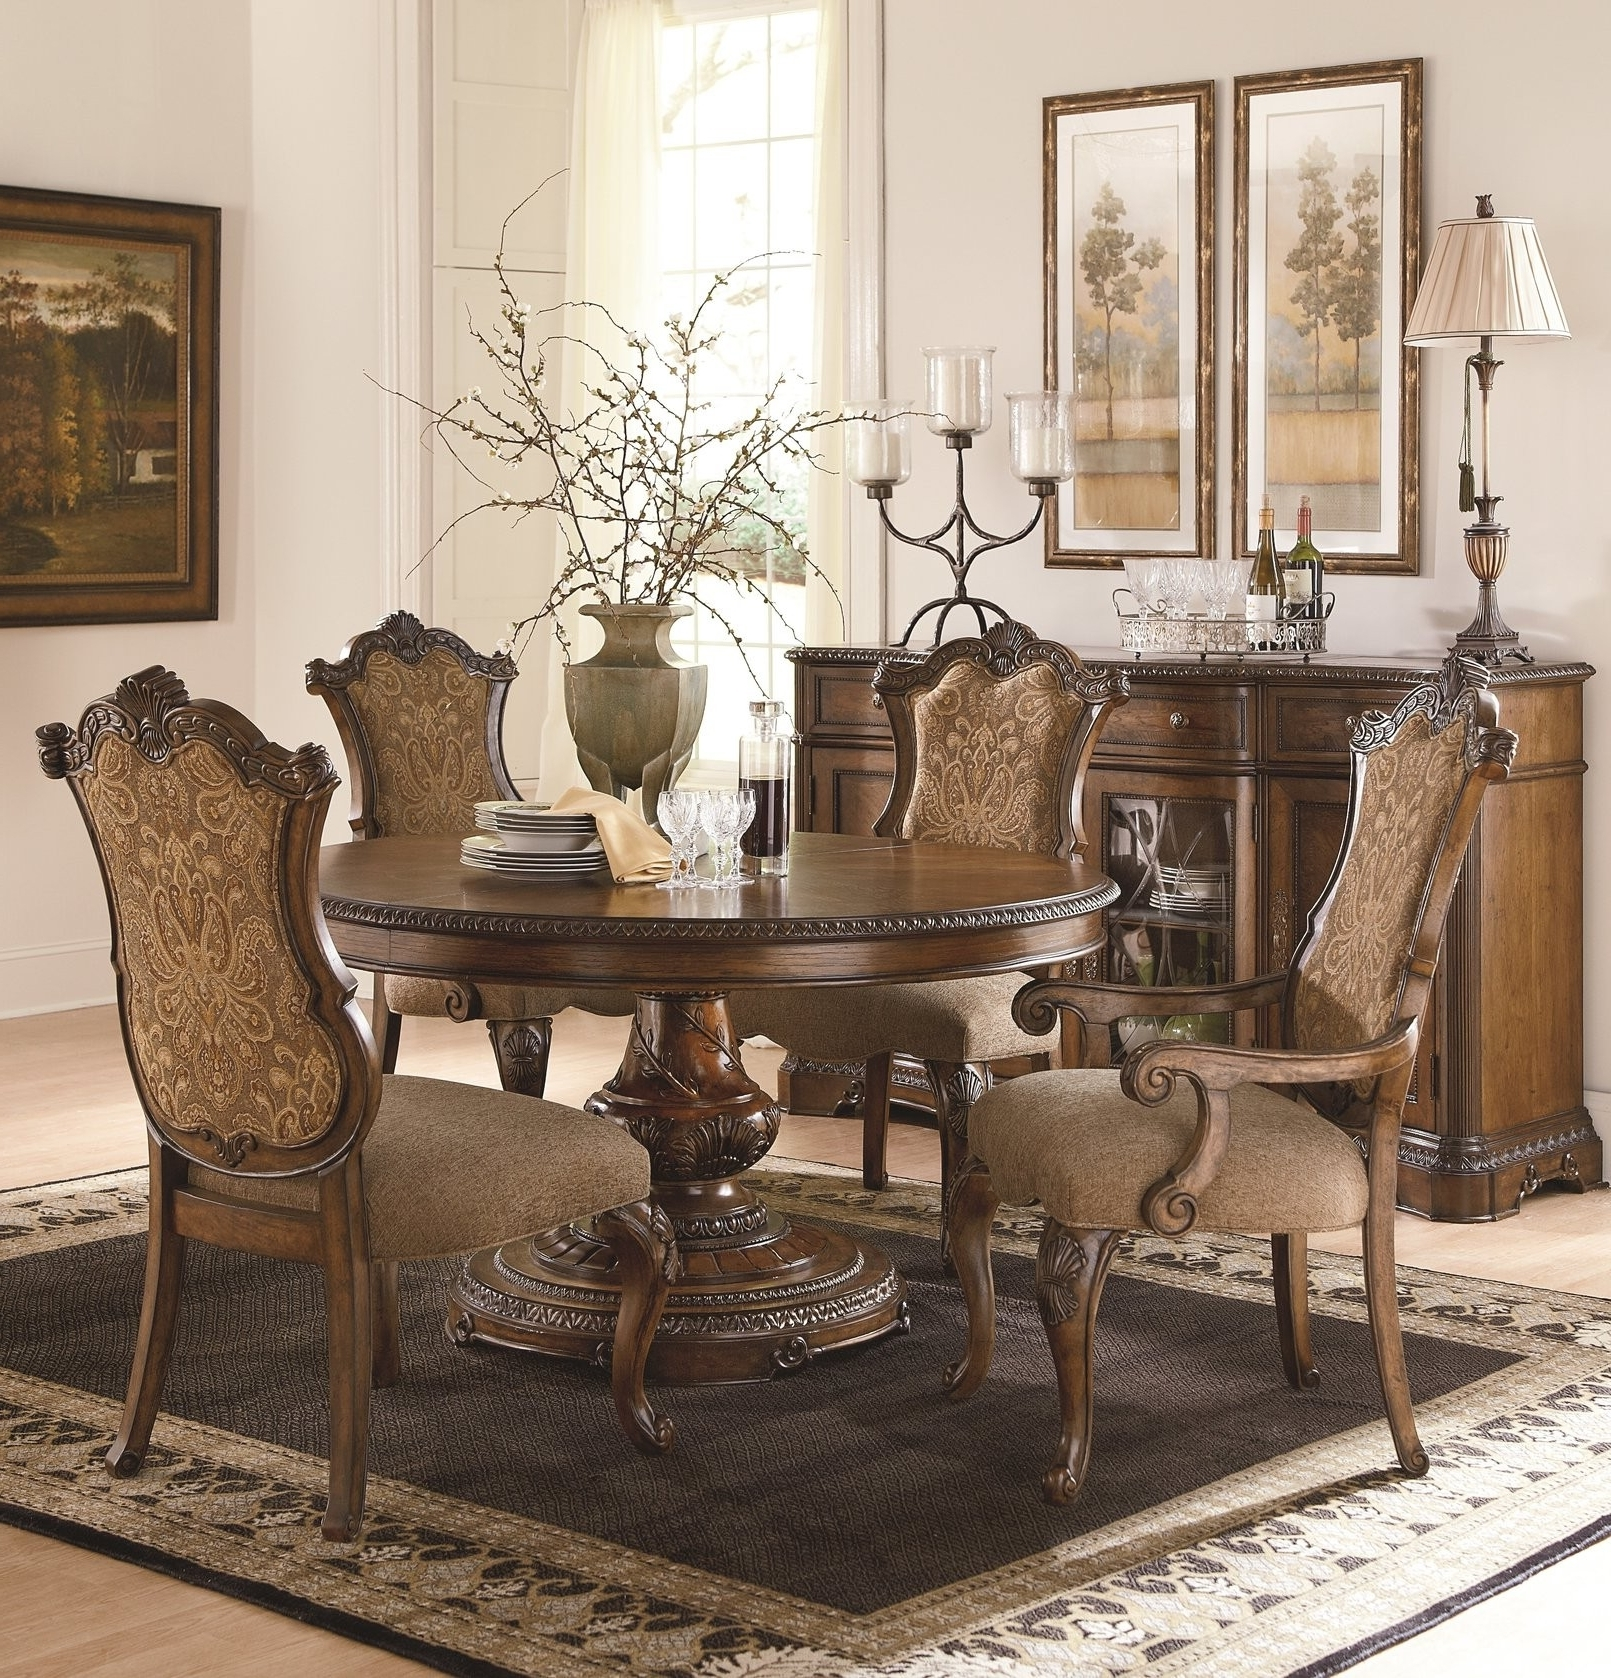 Preferred Dining Table Upholstered Chairs Unique The Pemberleigh Round Table With Jaxon Grey 5 Piece Round Extension Dining Sets With Upholstered Chairs (View 9 of 25)